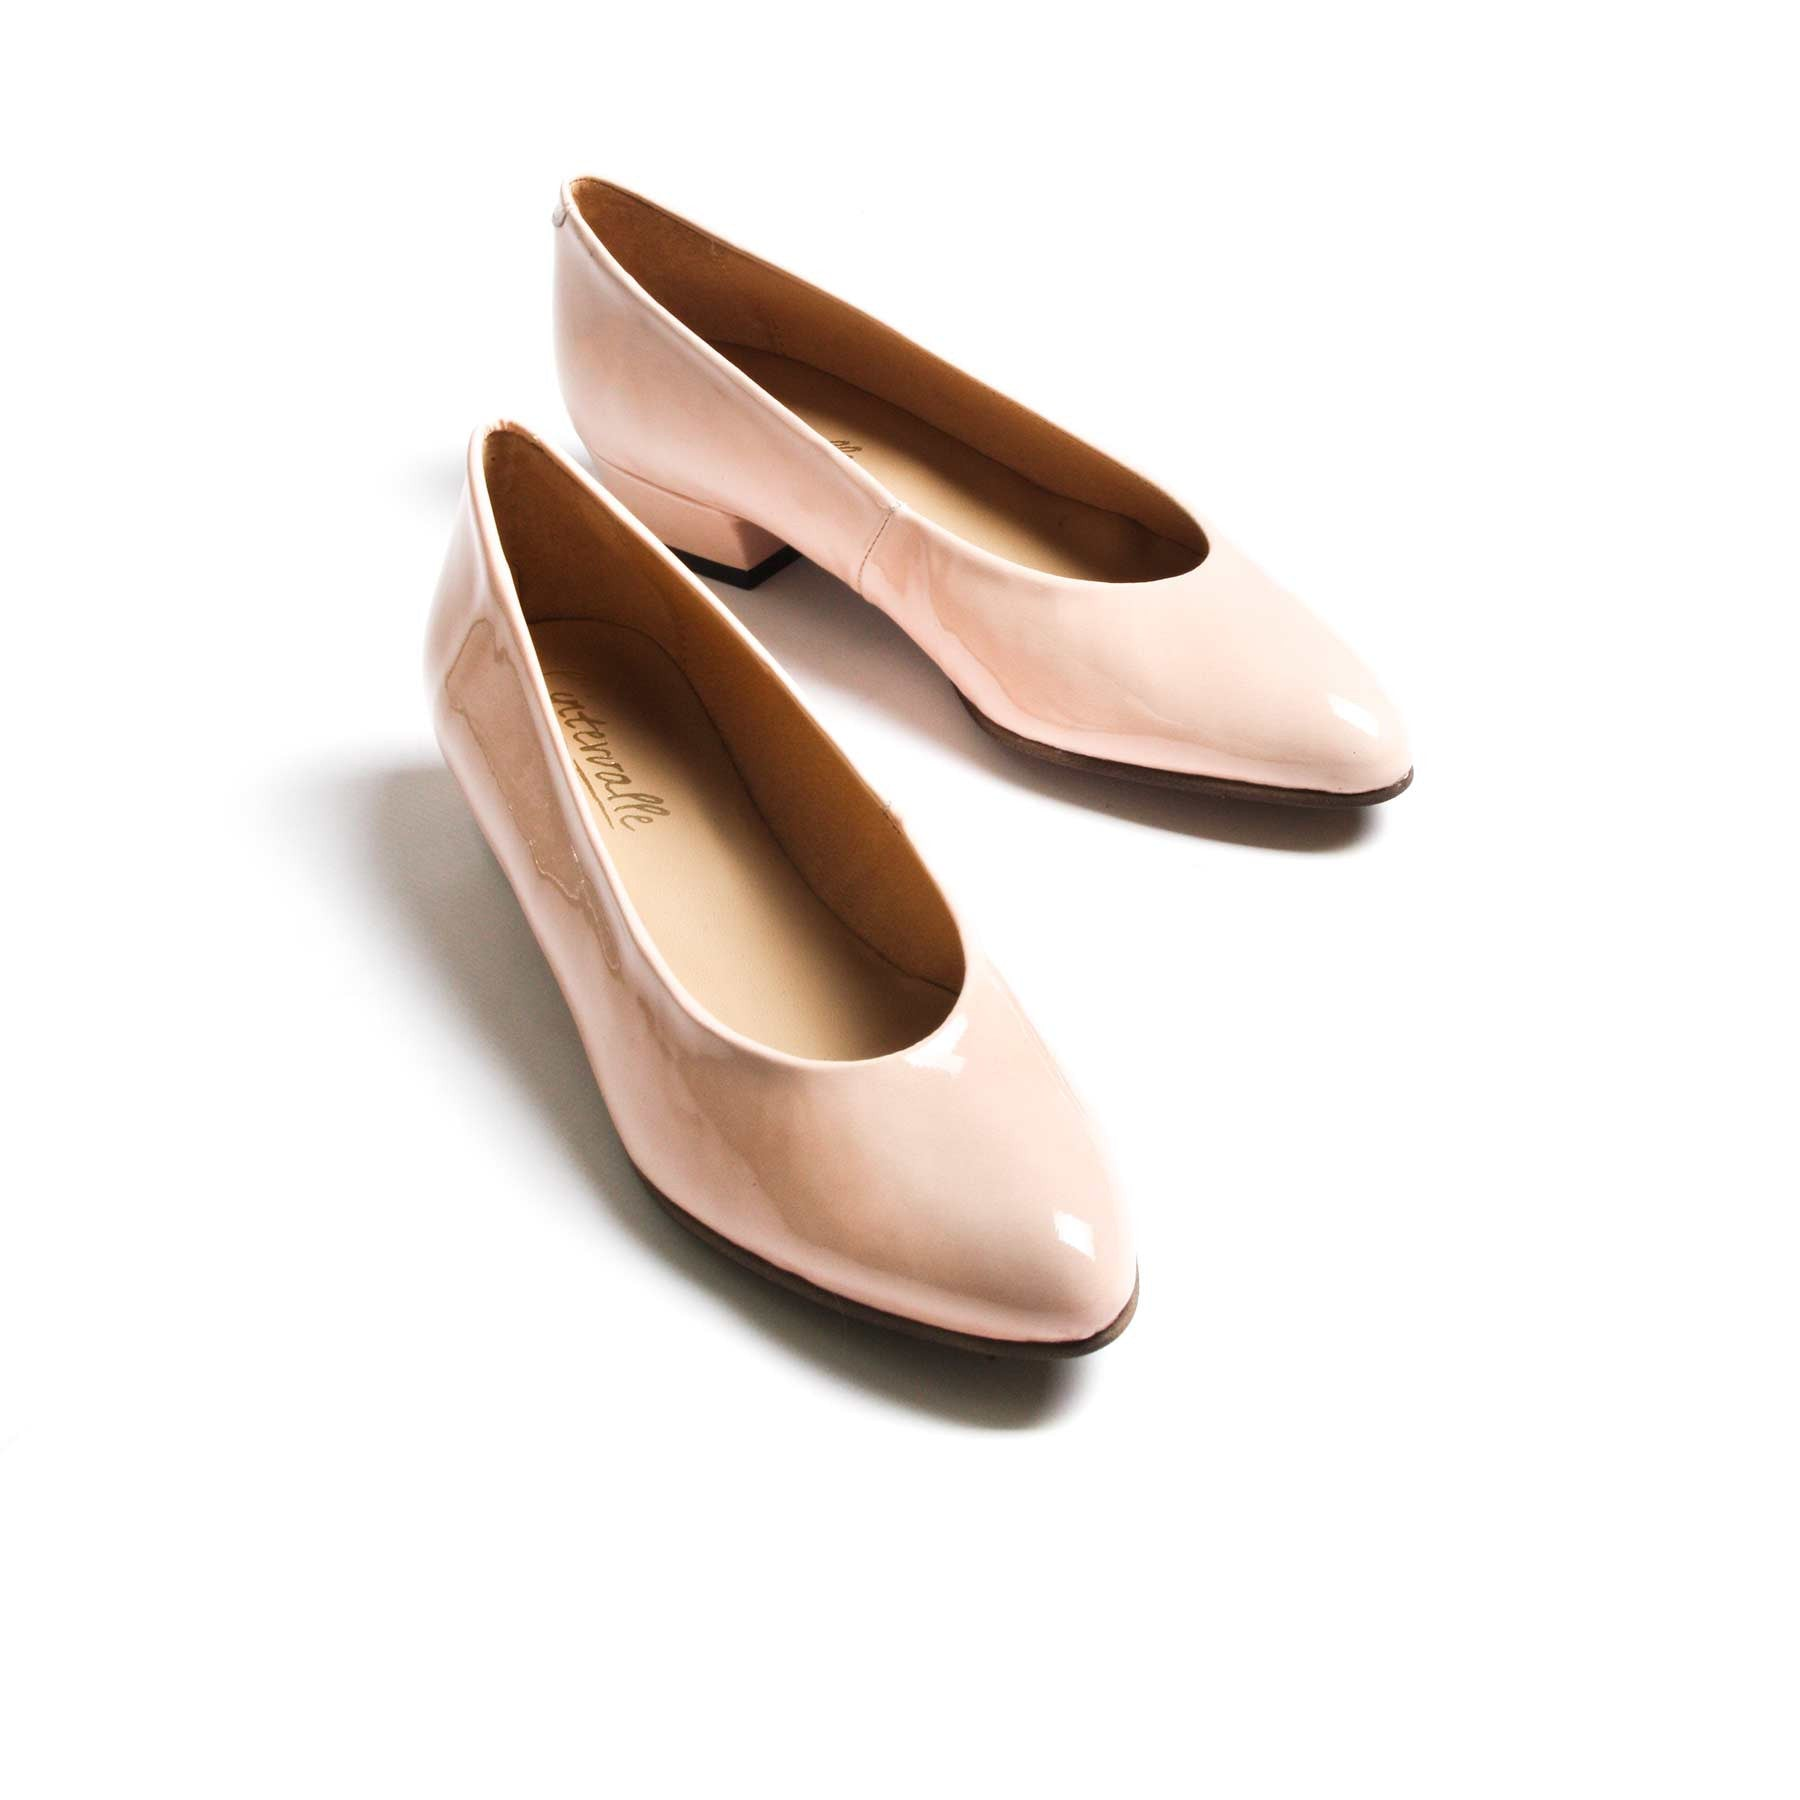 Pumps, Clau Nude Patent Leather - Lintervalle shoes for woman